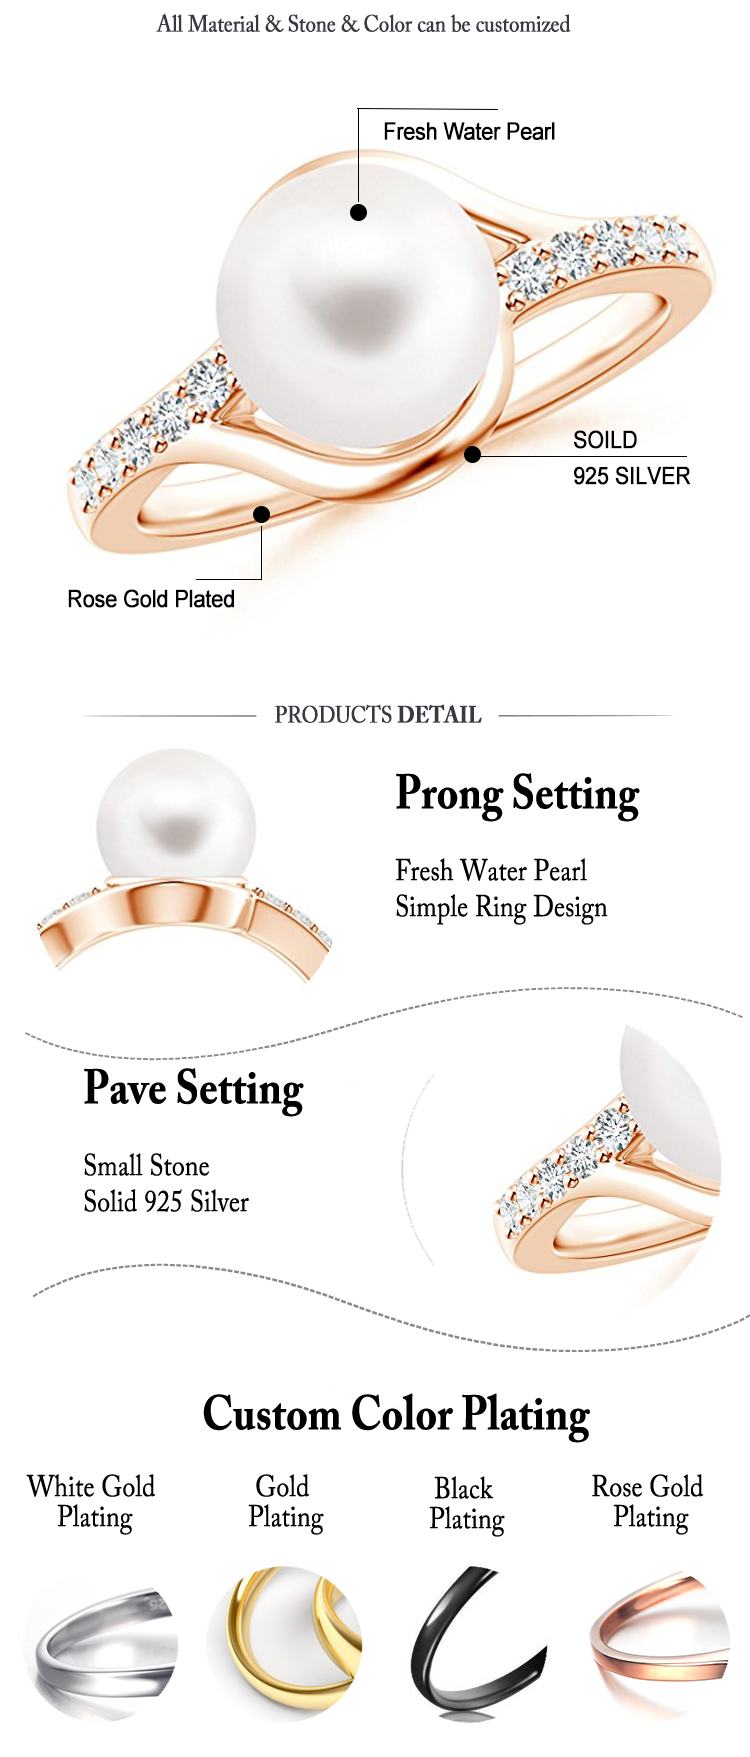 Rose Gold Plated Pearl ring designs for Women